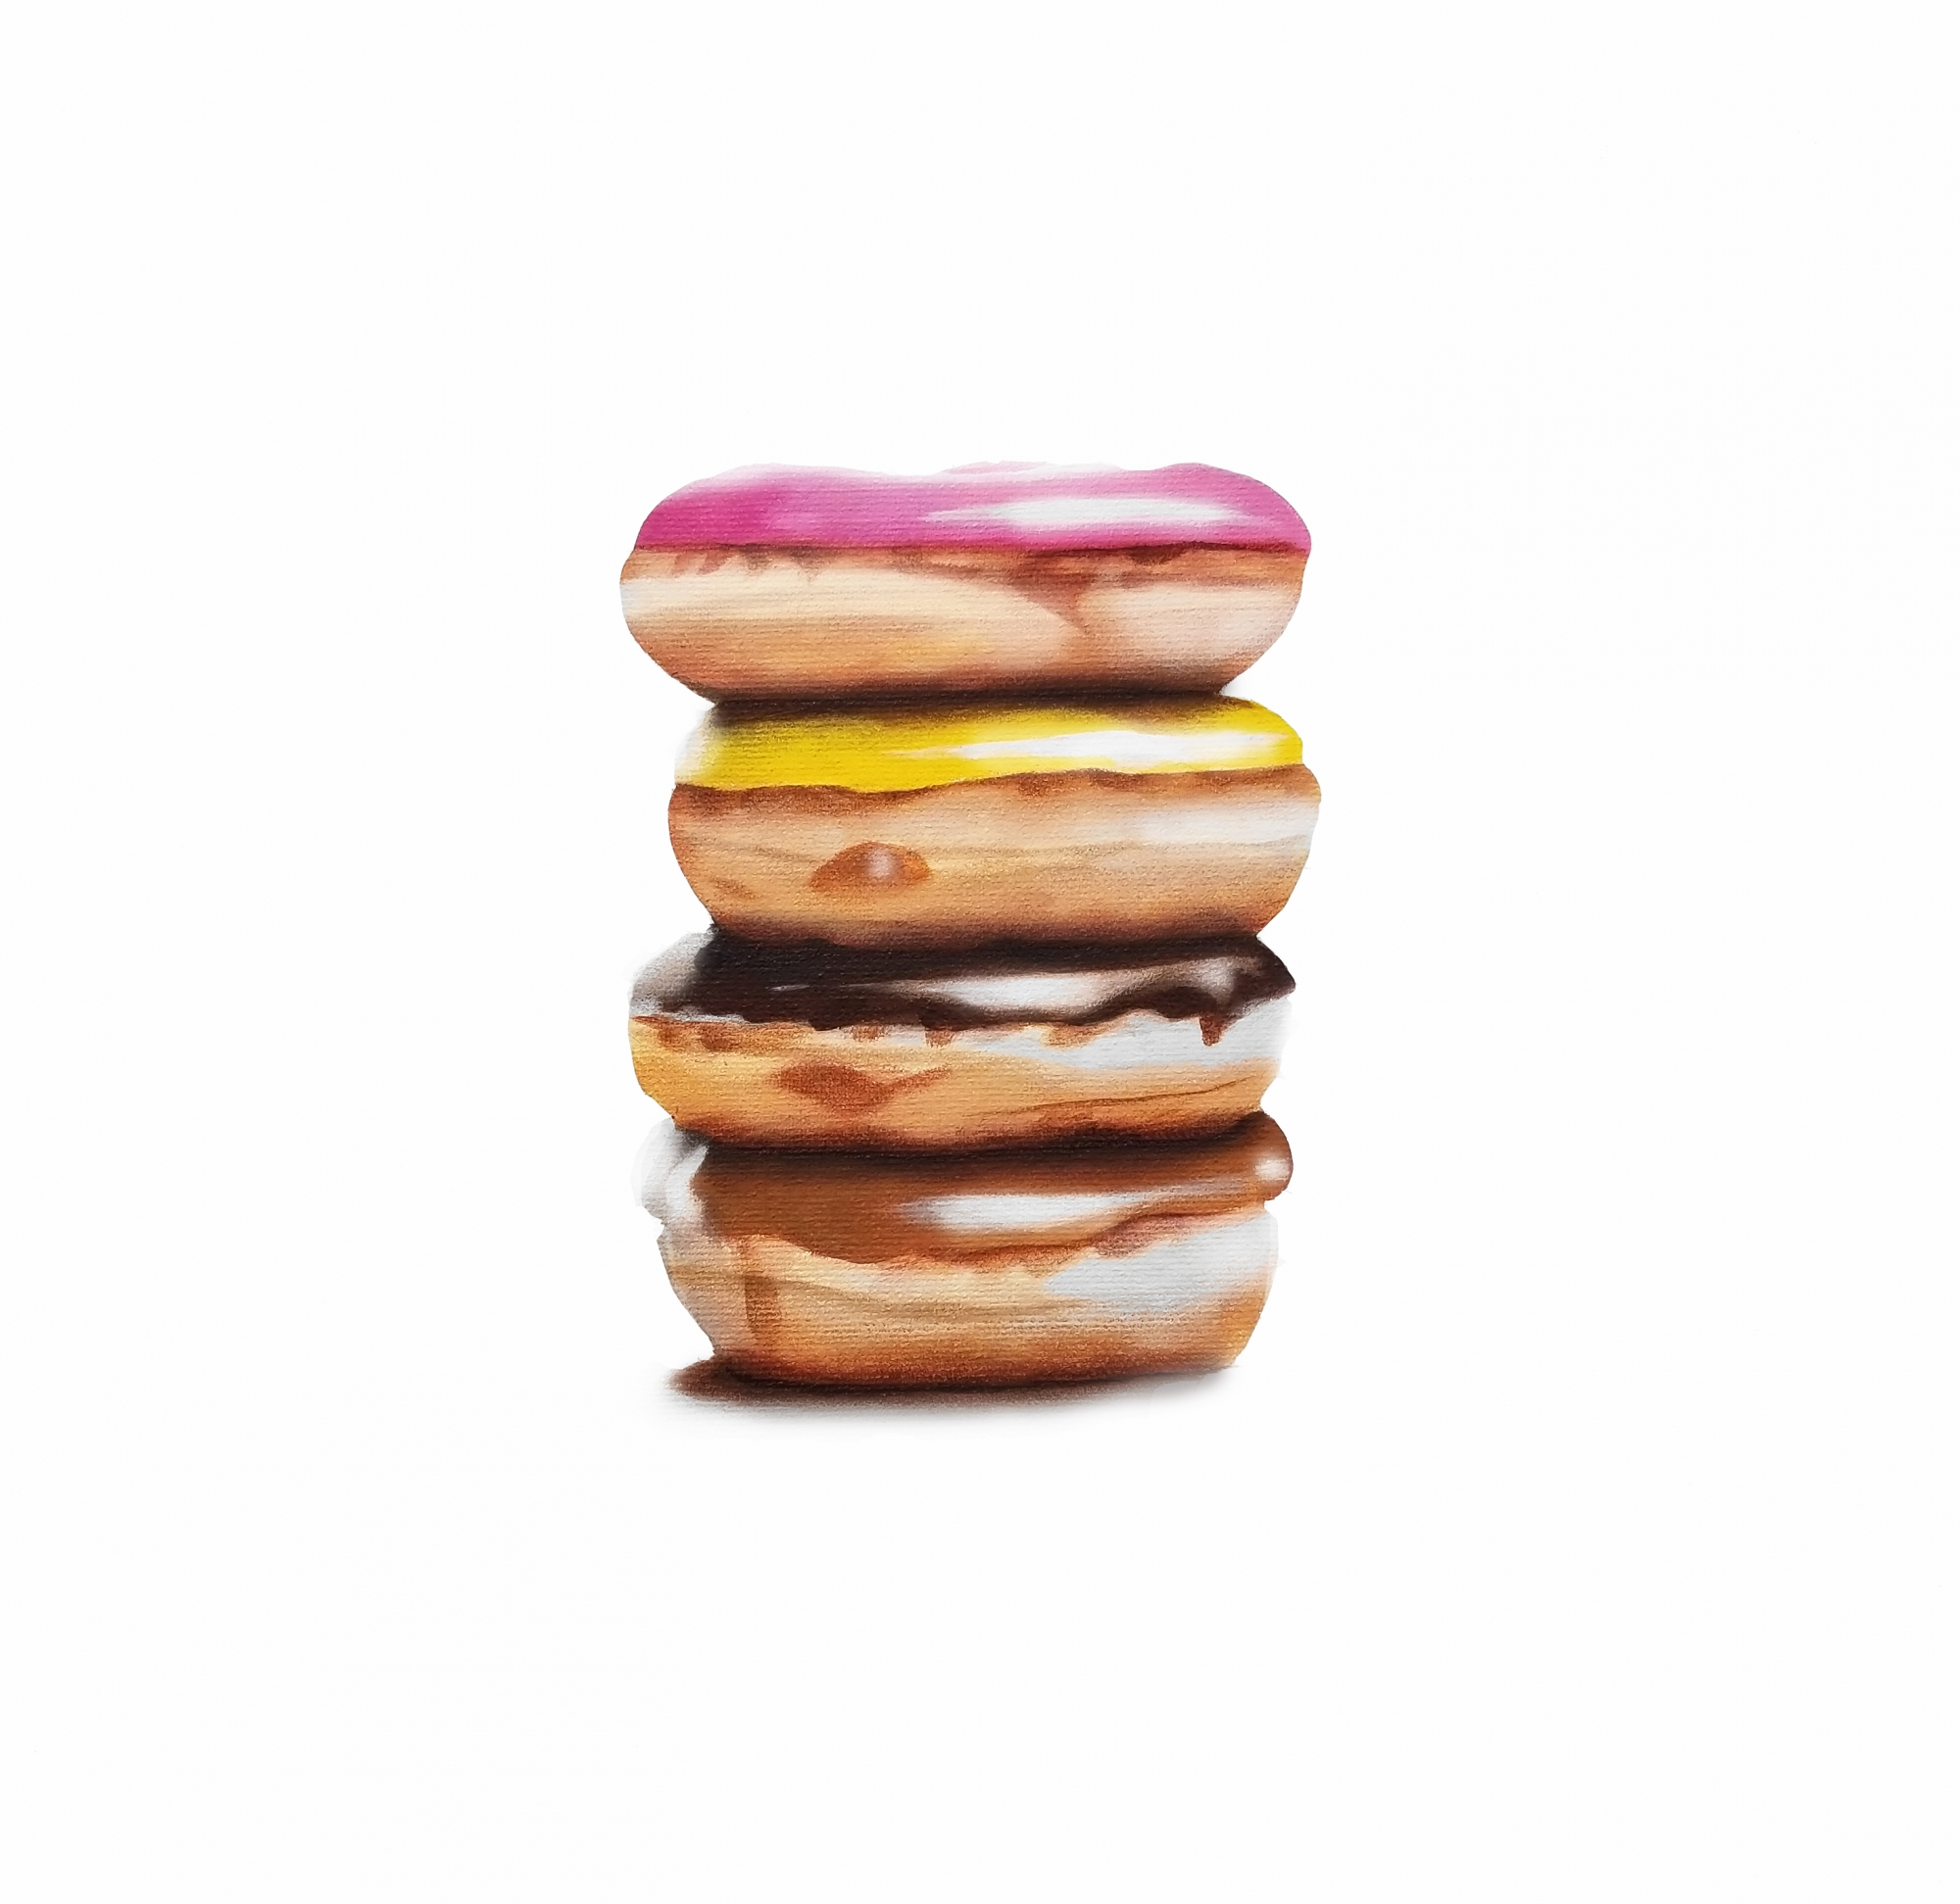 Tasting Room: Donut Stack  by Erin Rothstein